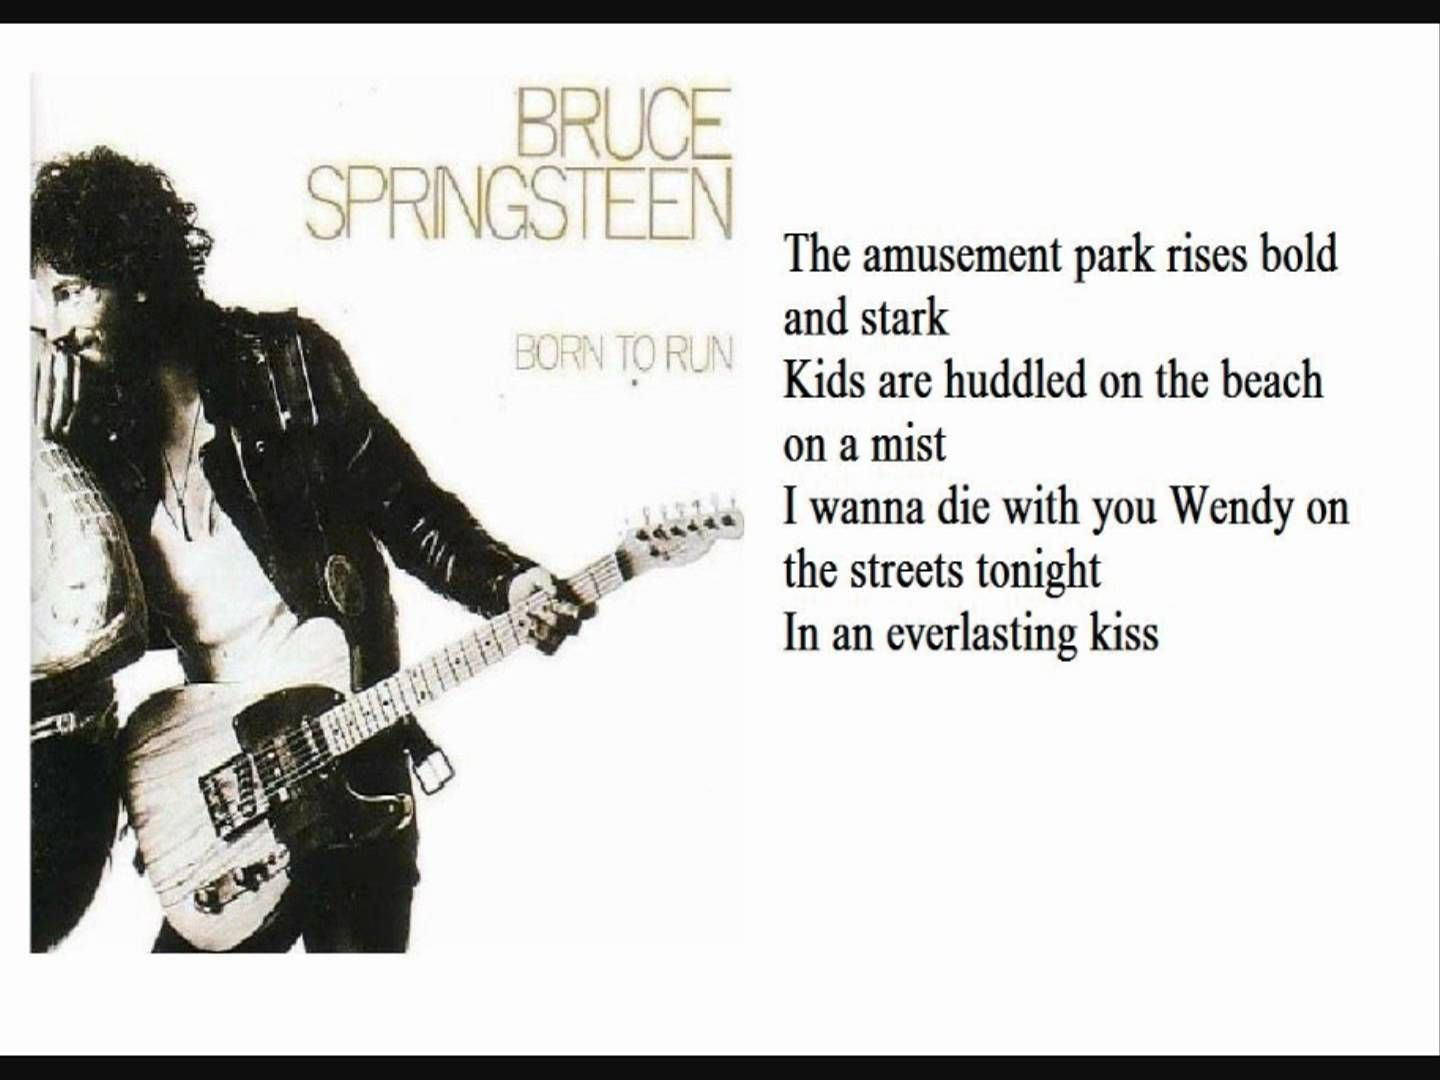 Bruce Springsteen Born to Run lyrics JK NOTE The air